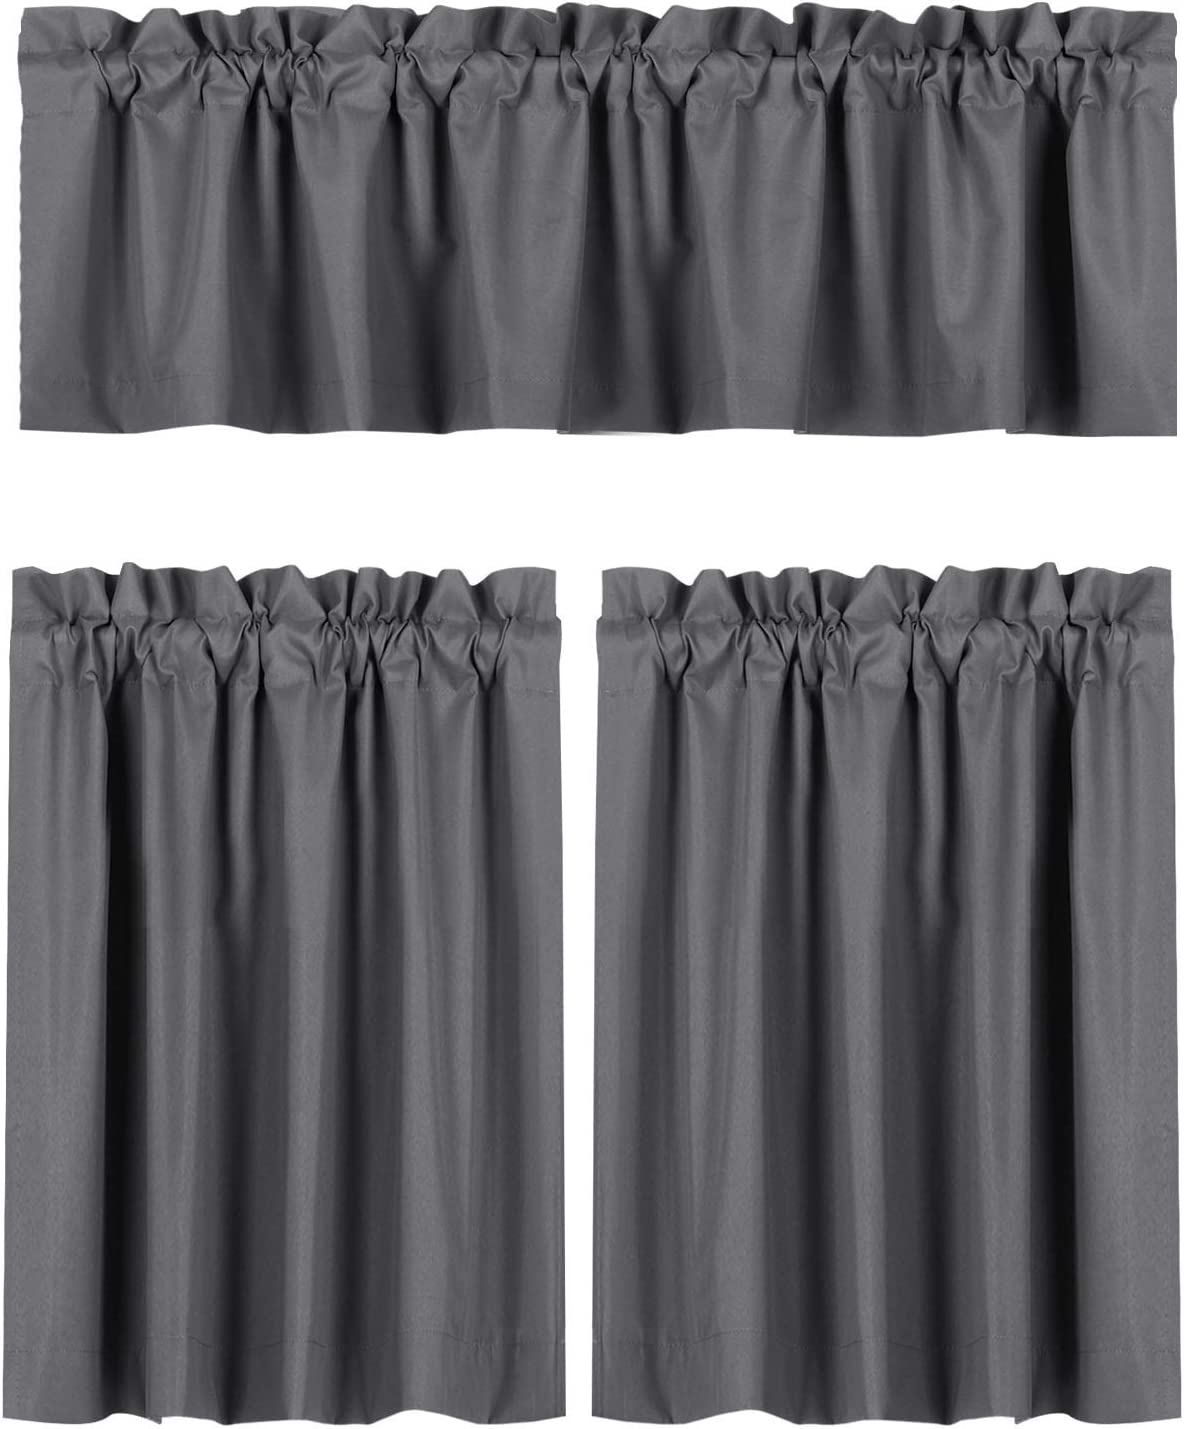 Valea Home Blackout Curtains Kitchen Curtain Set, Valance and Tiers 36 inches Length, Grey